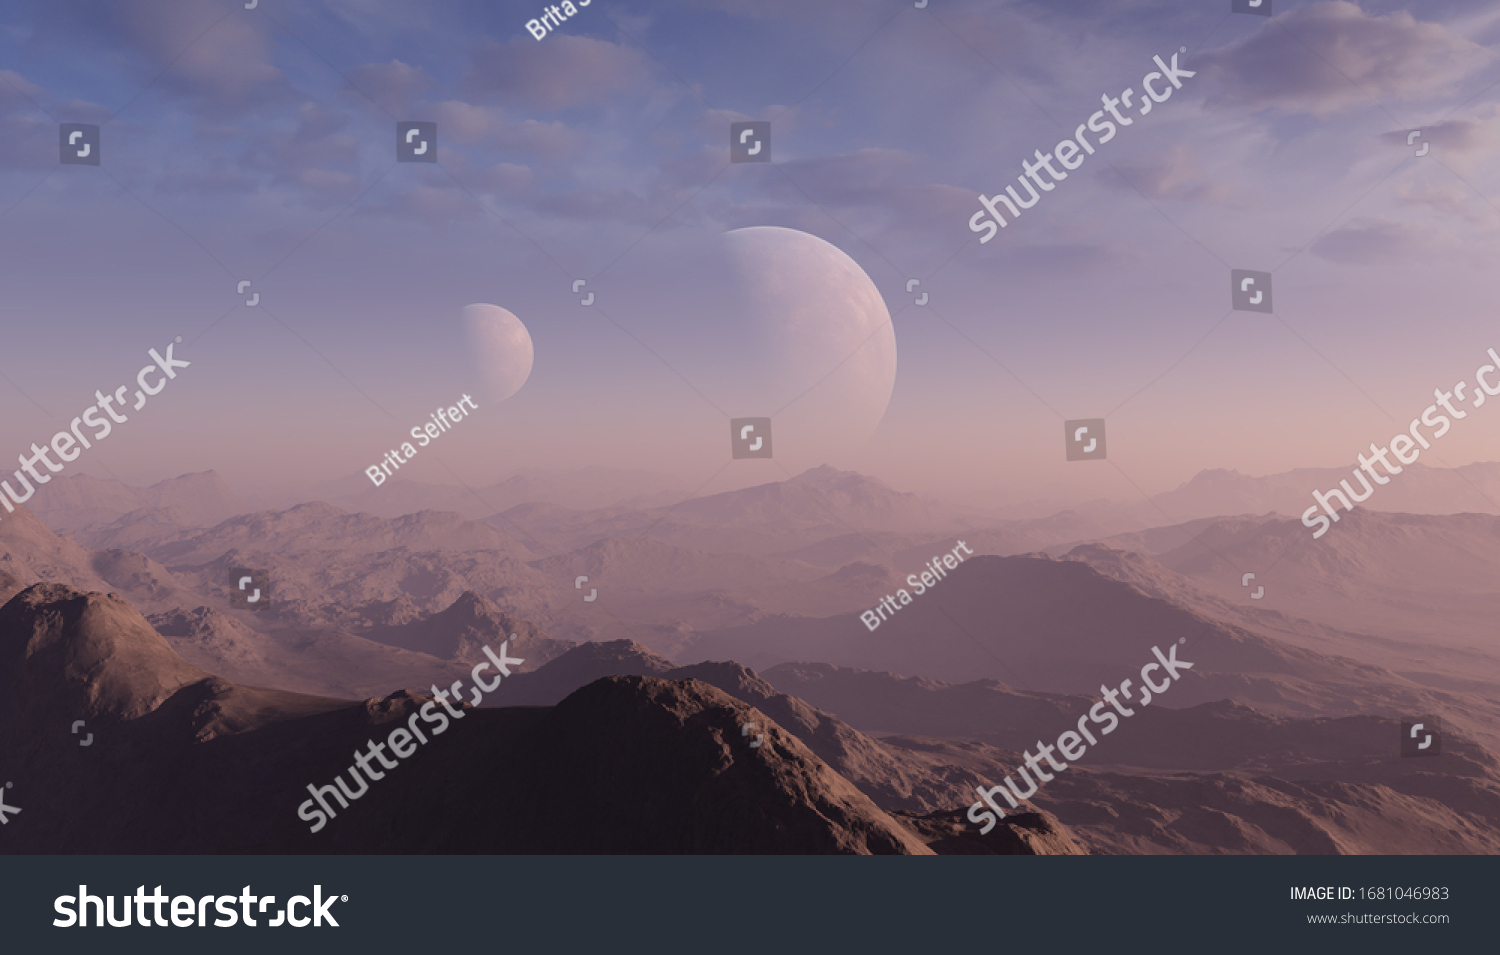 3d rendered Space Art: Alien Planet - A Fantasy Landscape with blue skies and clouds #1681046983